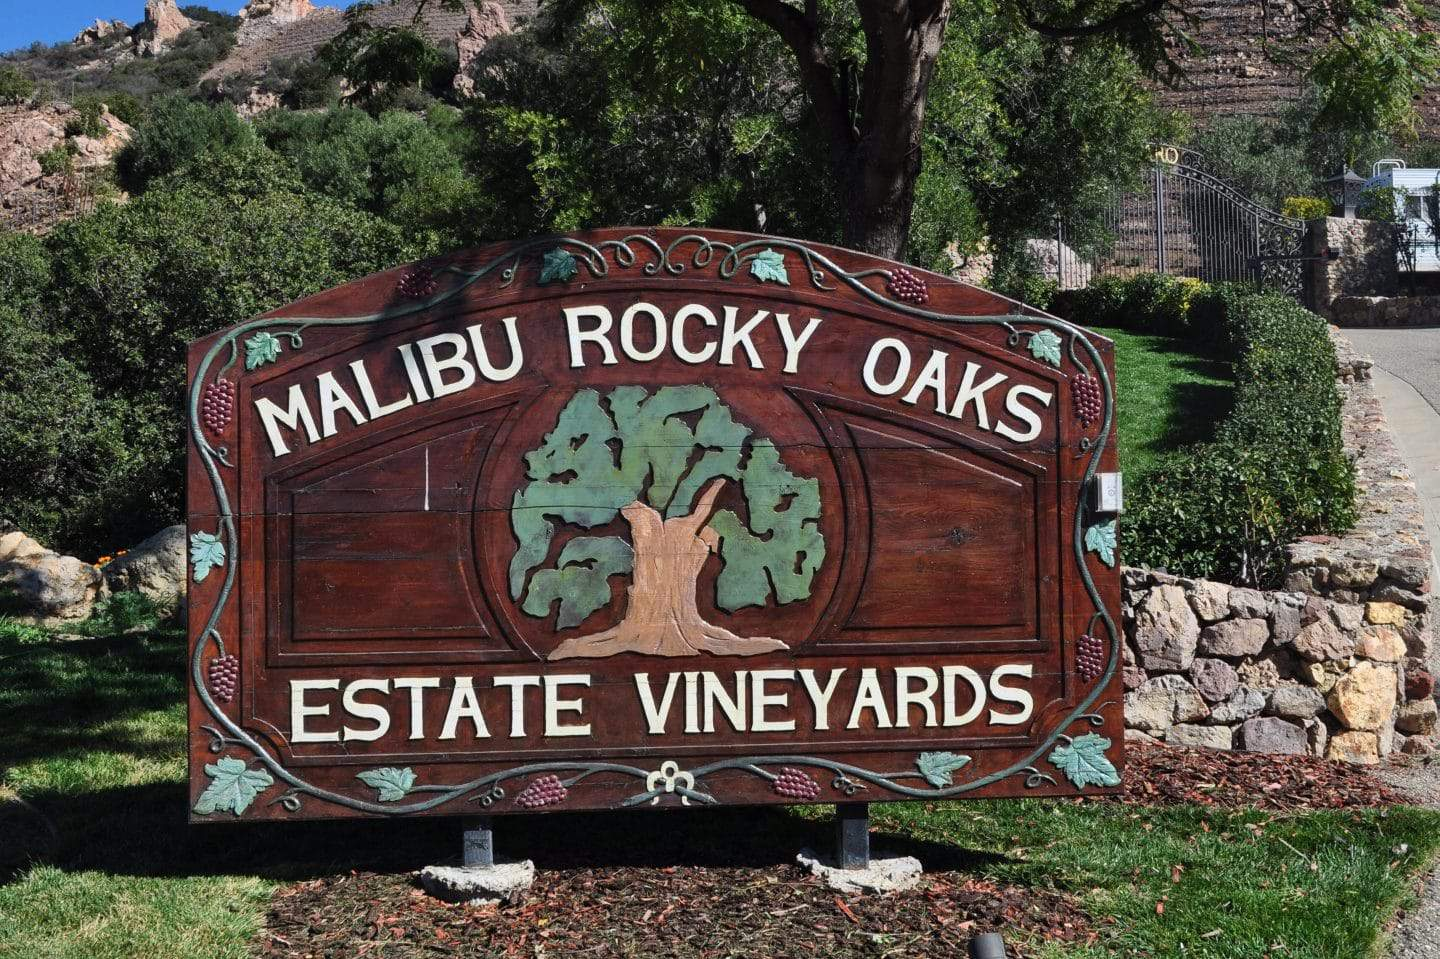 malibu rocky oaks vineyards